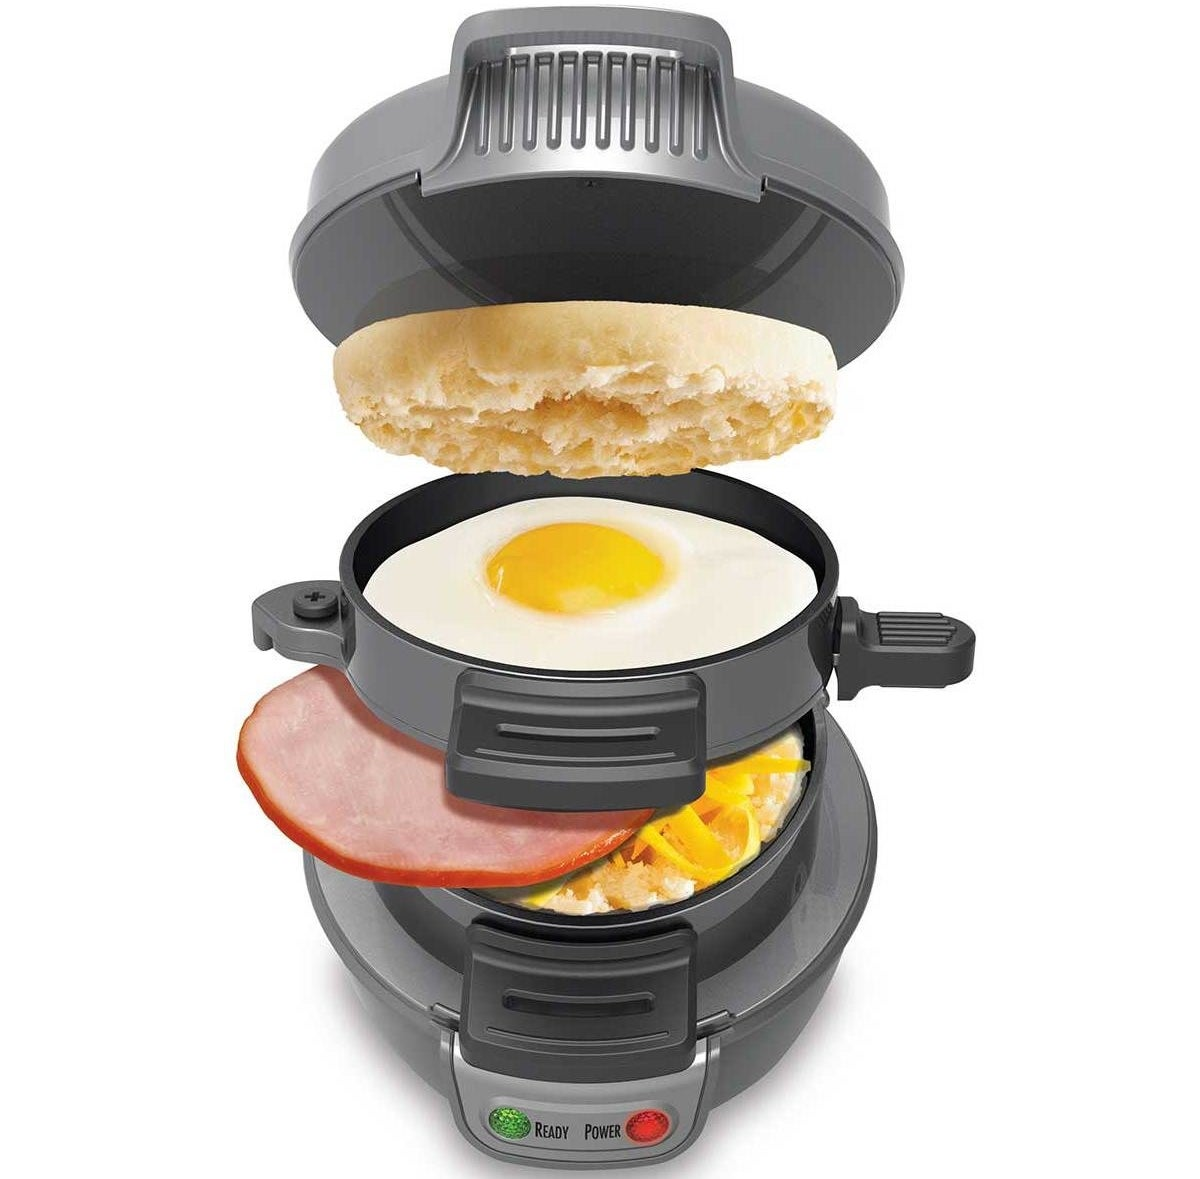 It only takes about five minutes to prepare your breakfast sandwich. You can use ingredients of your choice like eggs, cheese, and more! Just note that if using meat, it must be pre-cooked. Plus, all removable parts are dishwasher-safe!Get it from Walmart or Jet for $24.99.